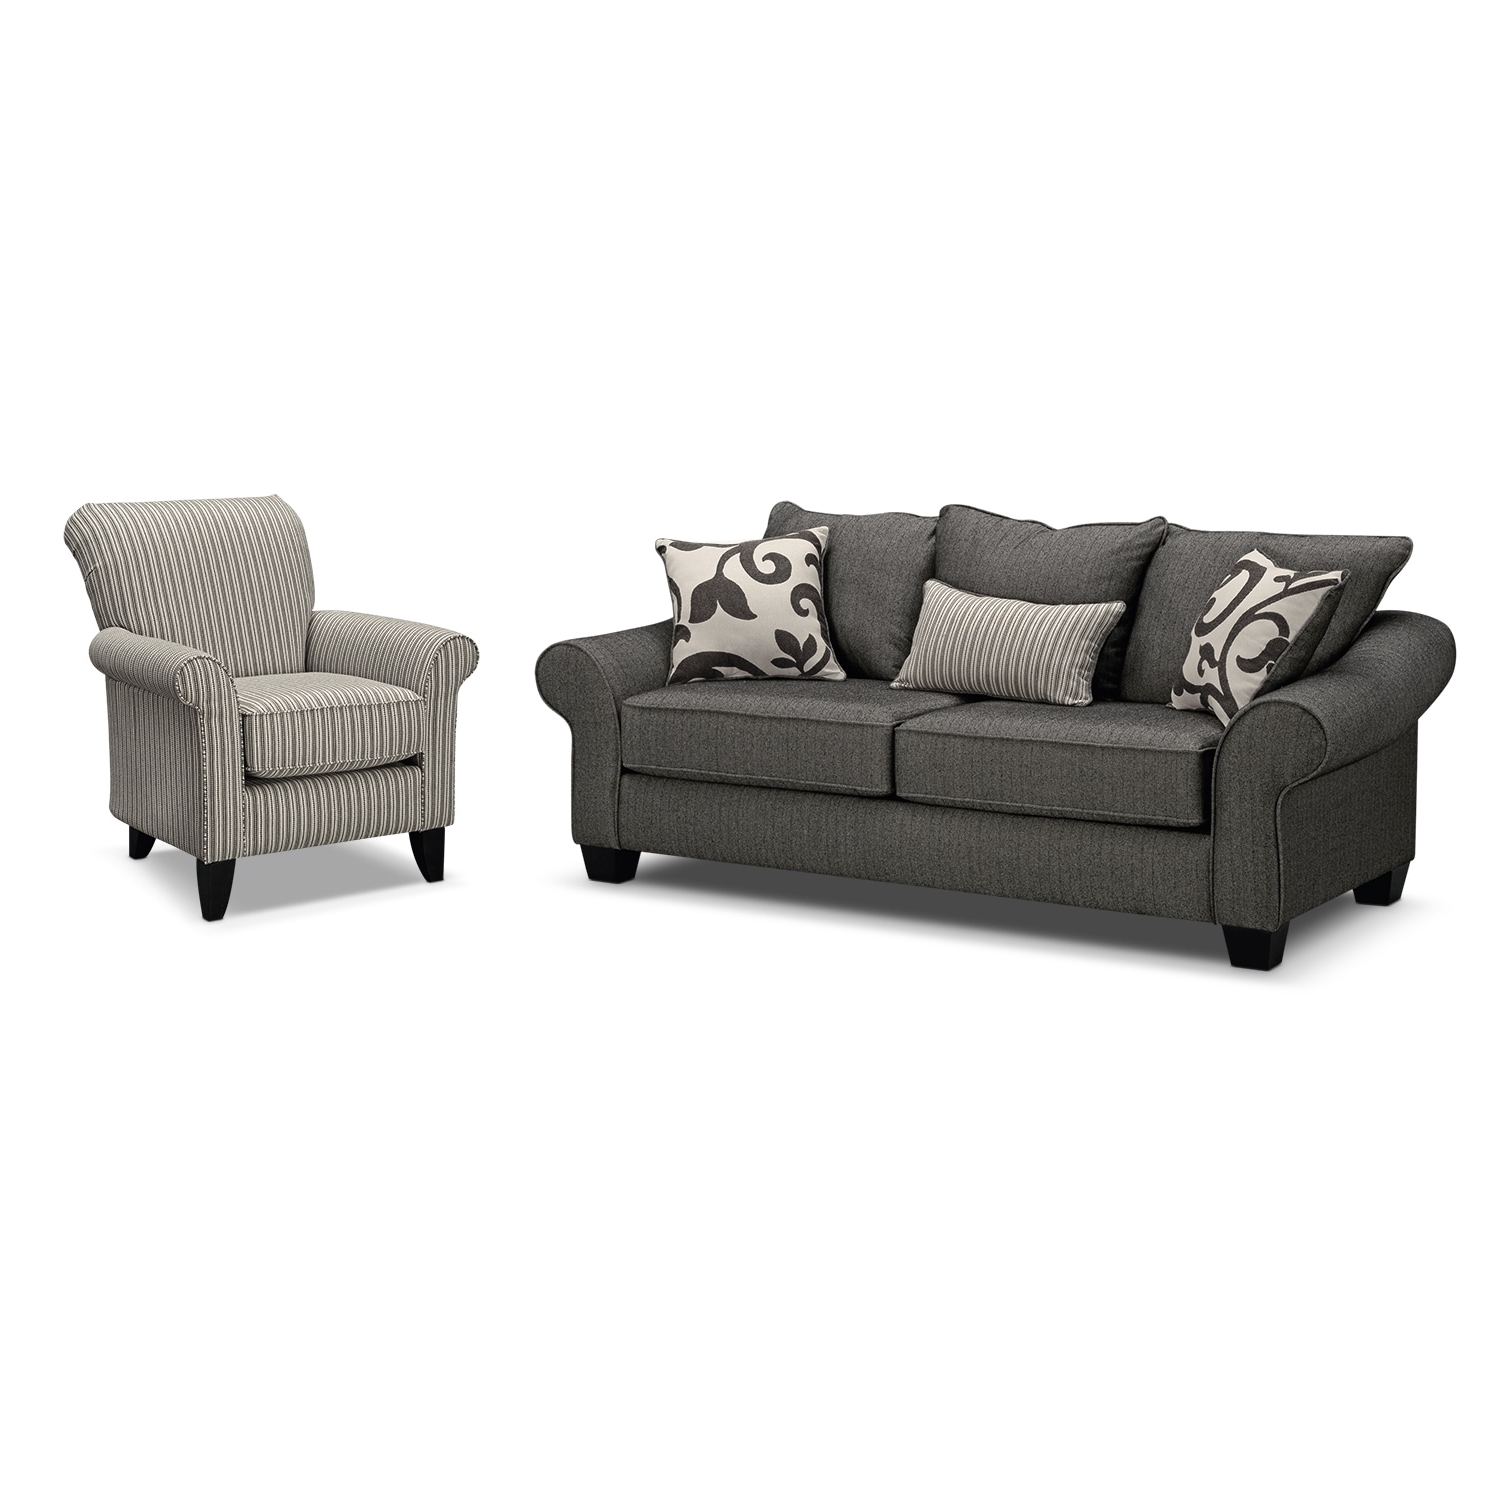 Value City Furniture Intended For Sofa And Accent Chair Sets (View 8 of 20)